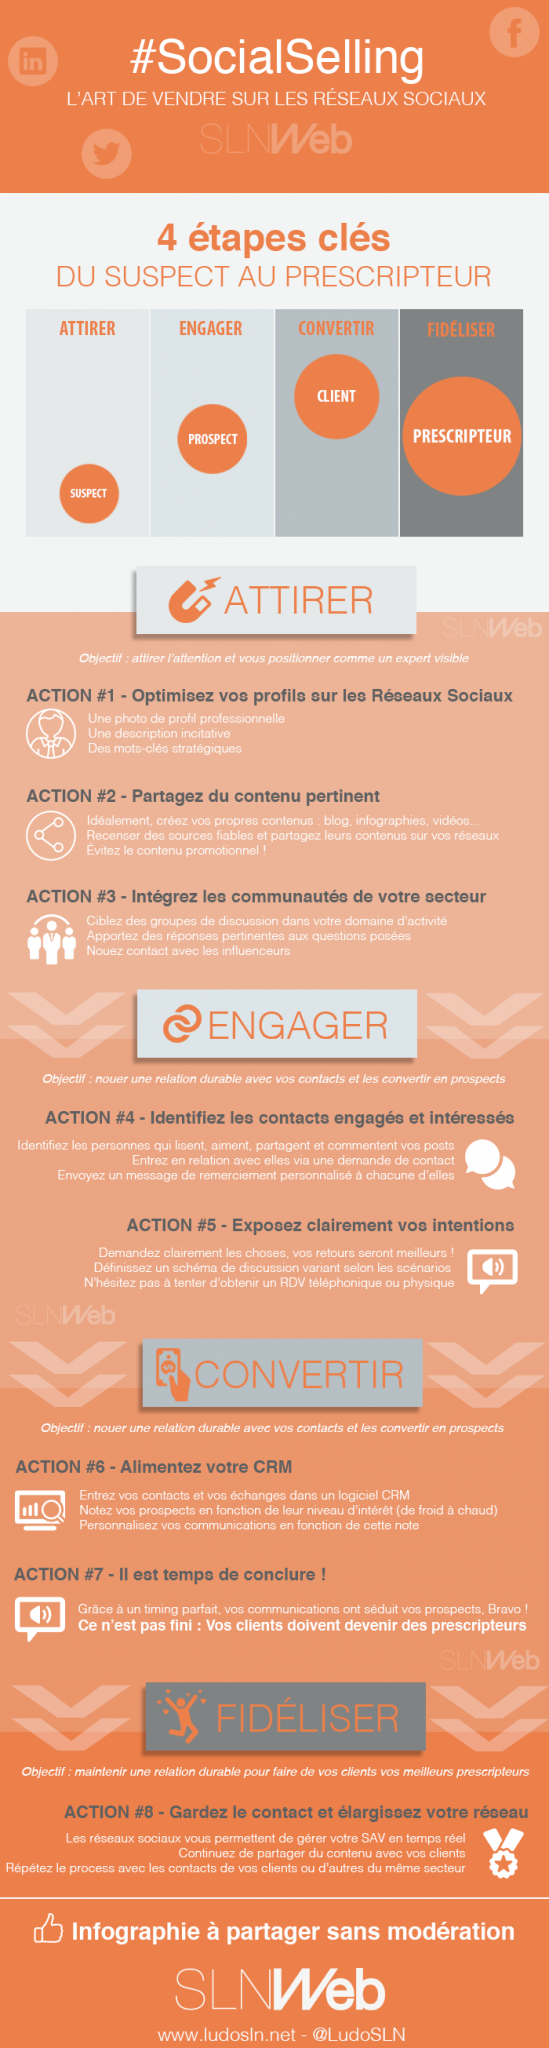 Social Selling - Infographie LudoSLN